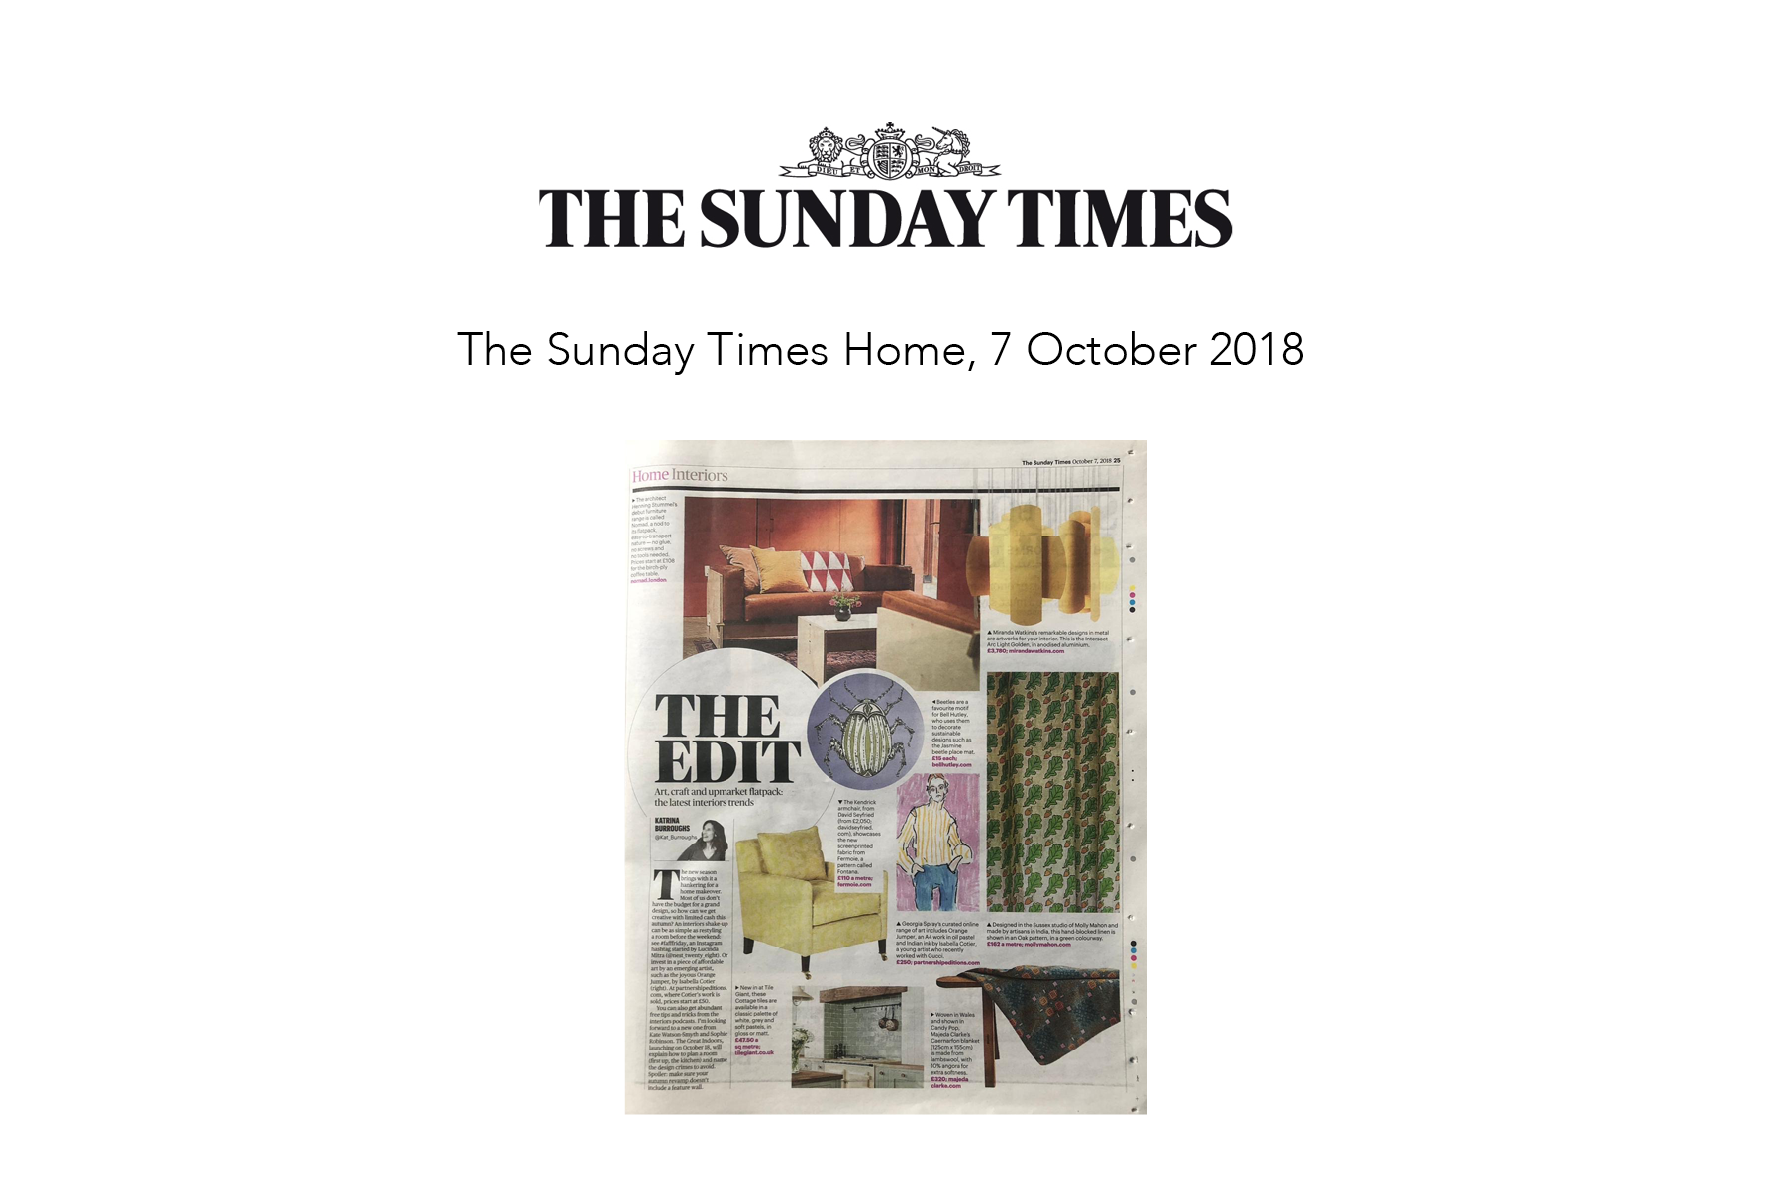 Sunday Times Home 7th October 2018 .png